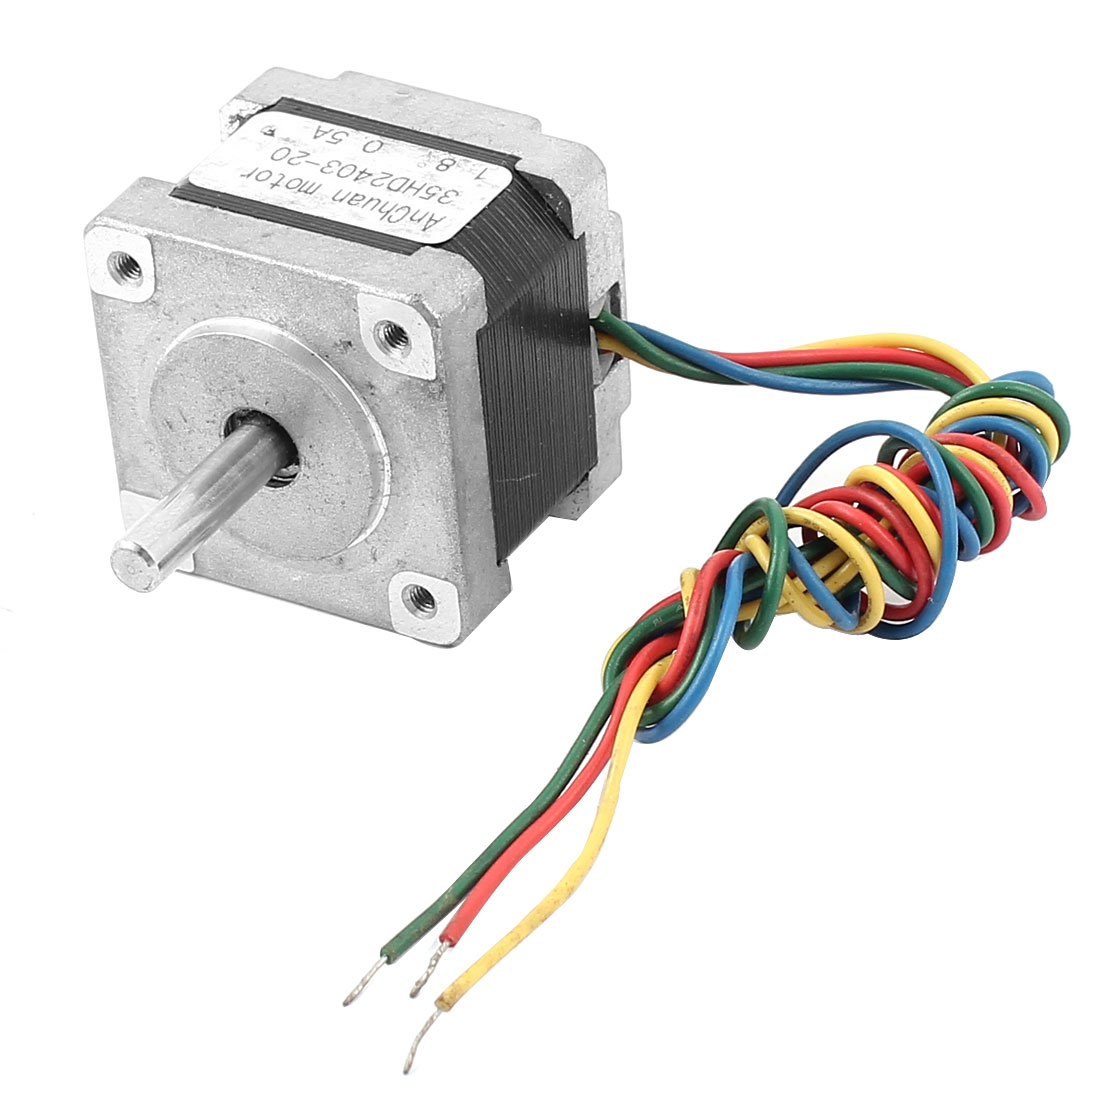 35X35mm Square 4 Wire 1.8 Degree 0.5A CNC Stepping Stepper Motor